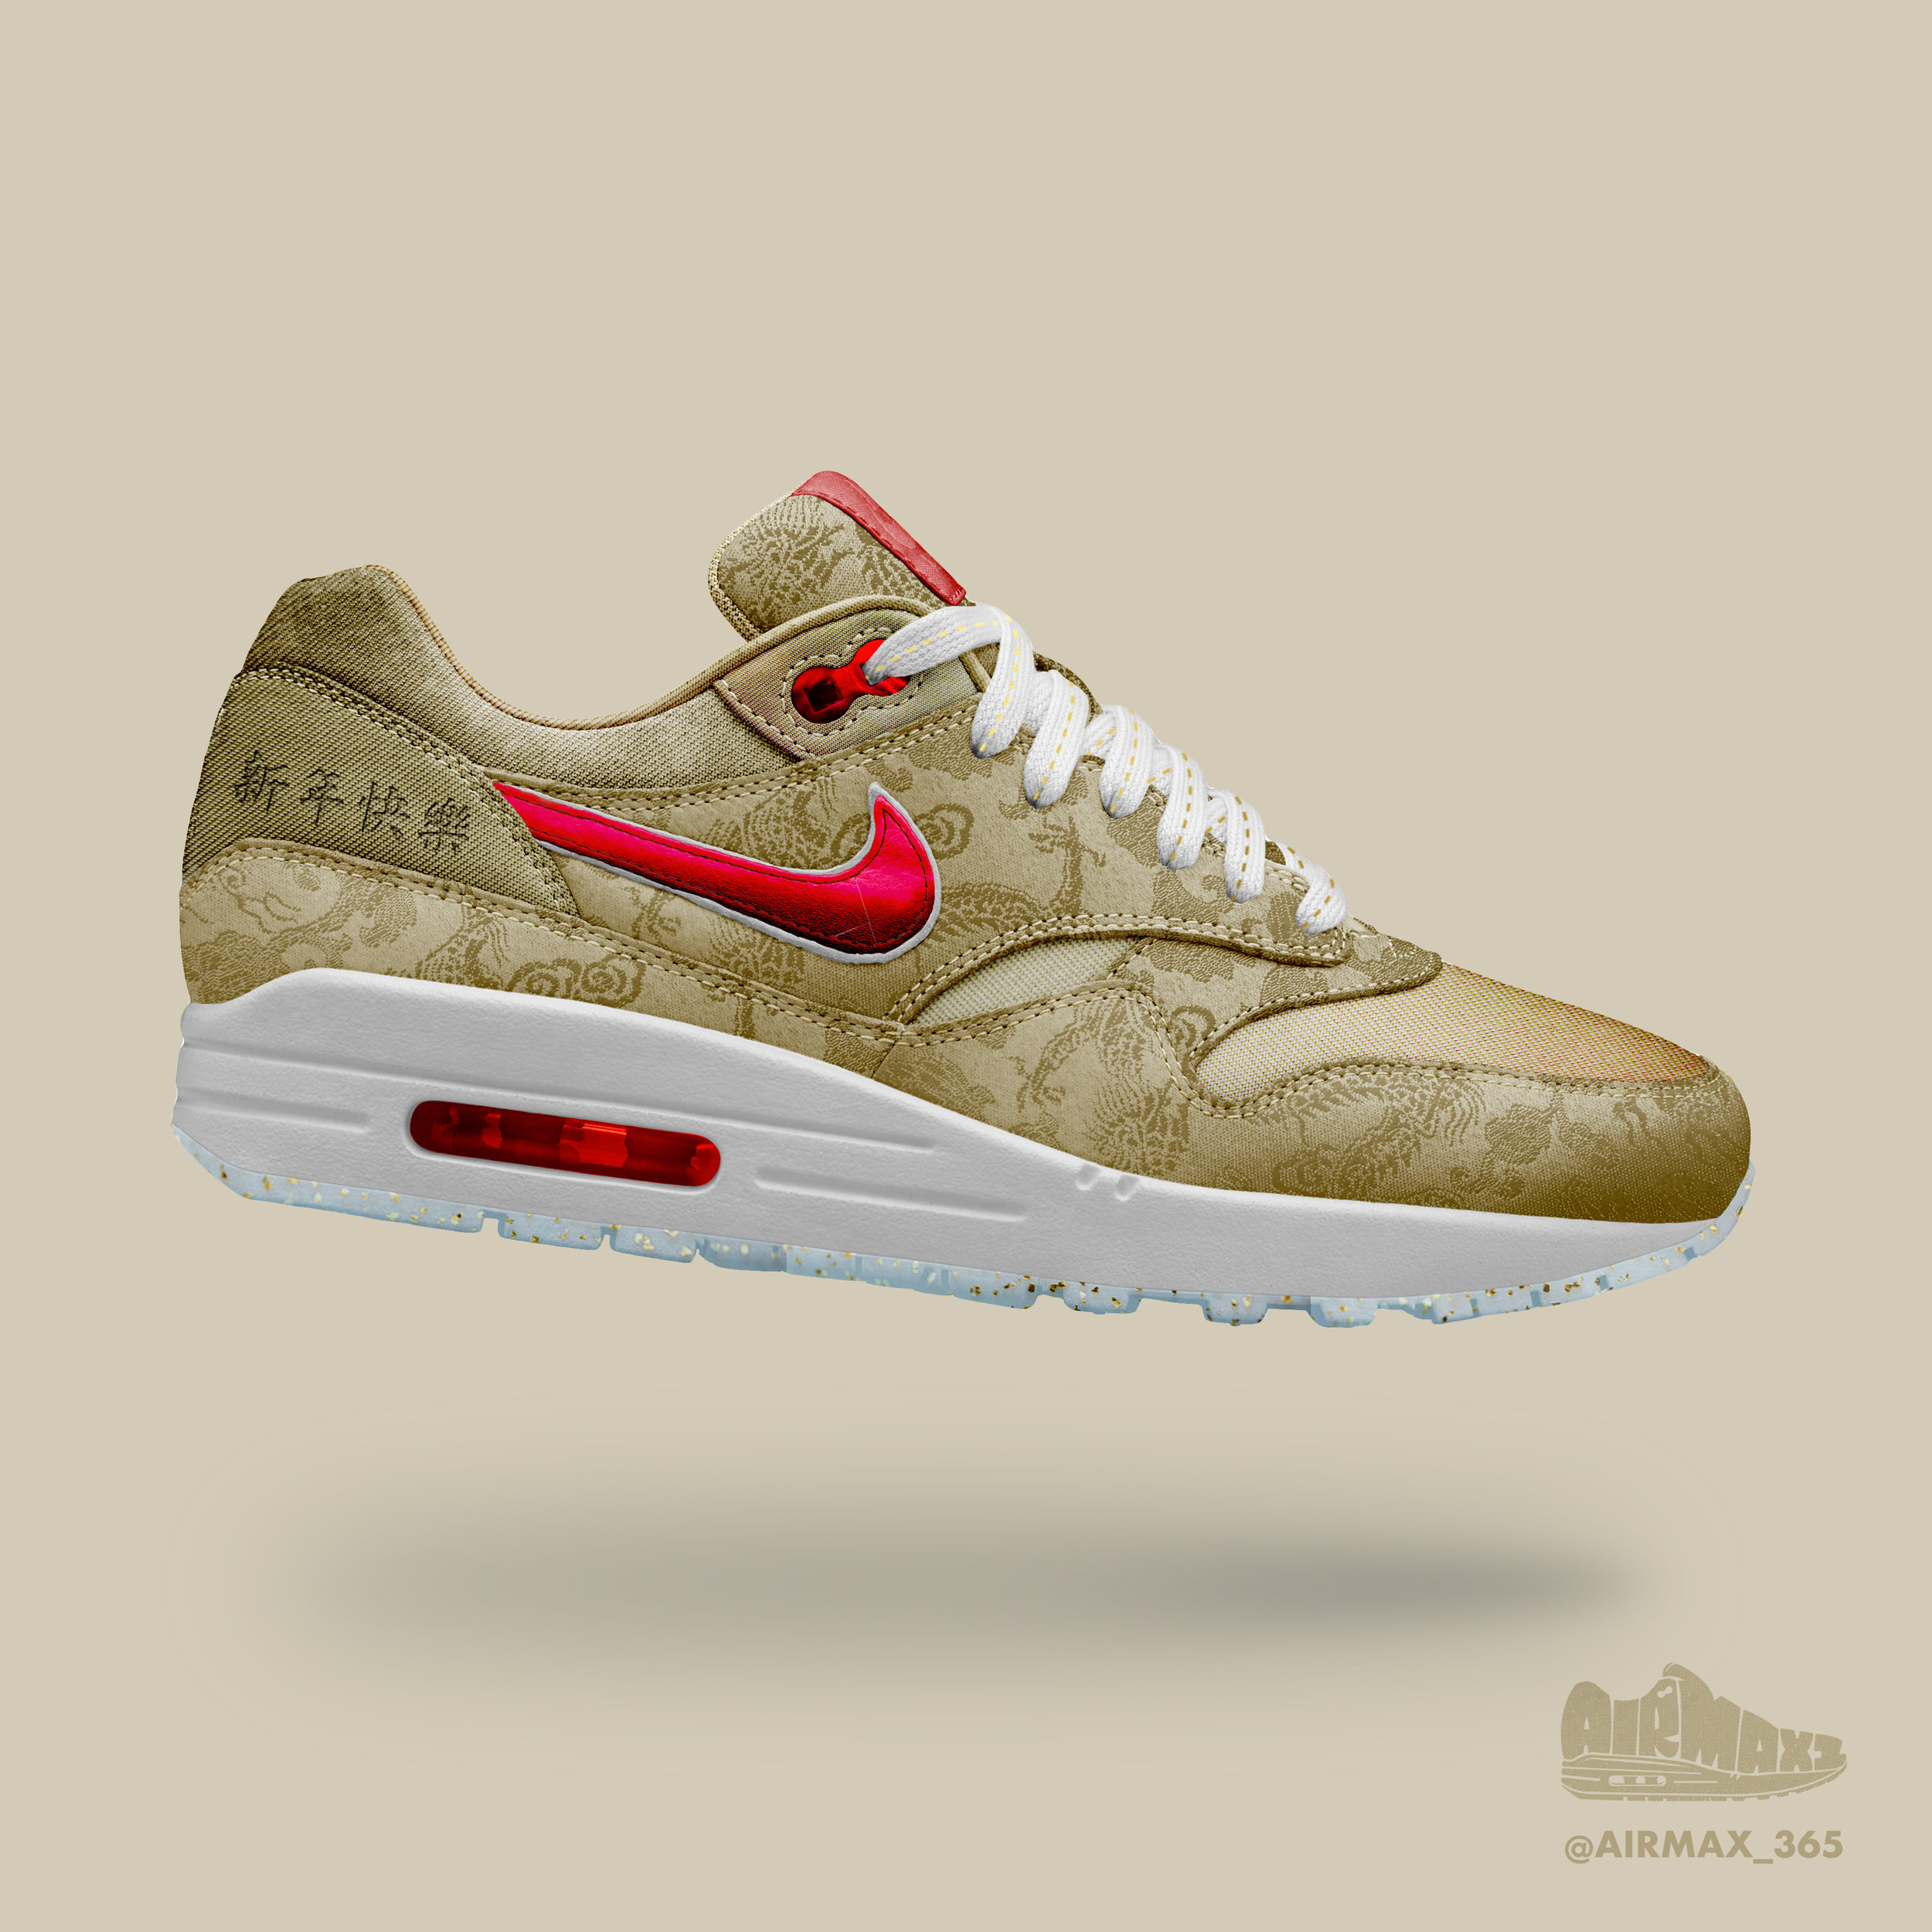 Day 189: Air Max 1 Chinese New Year